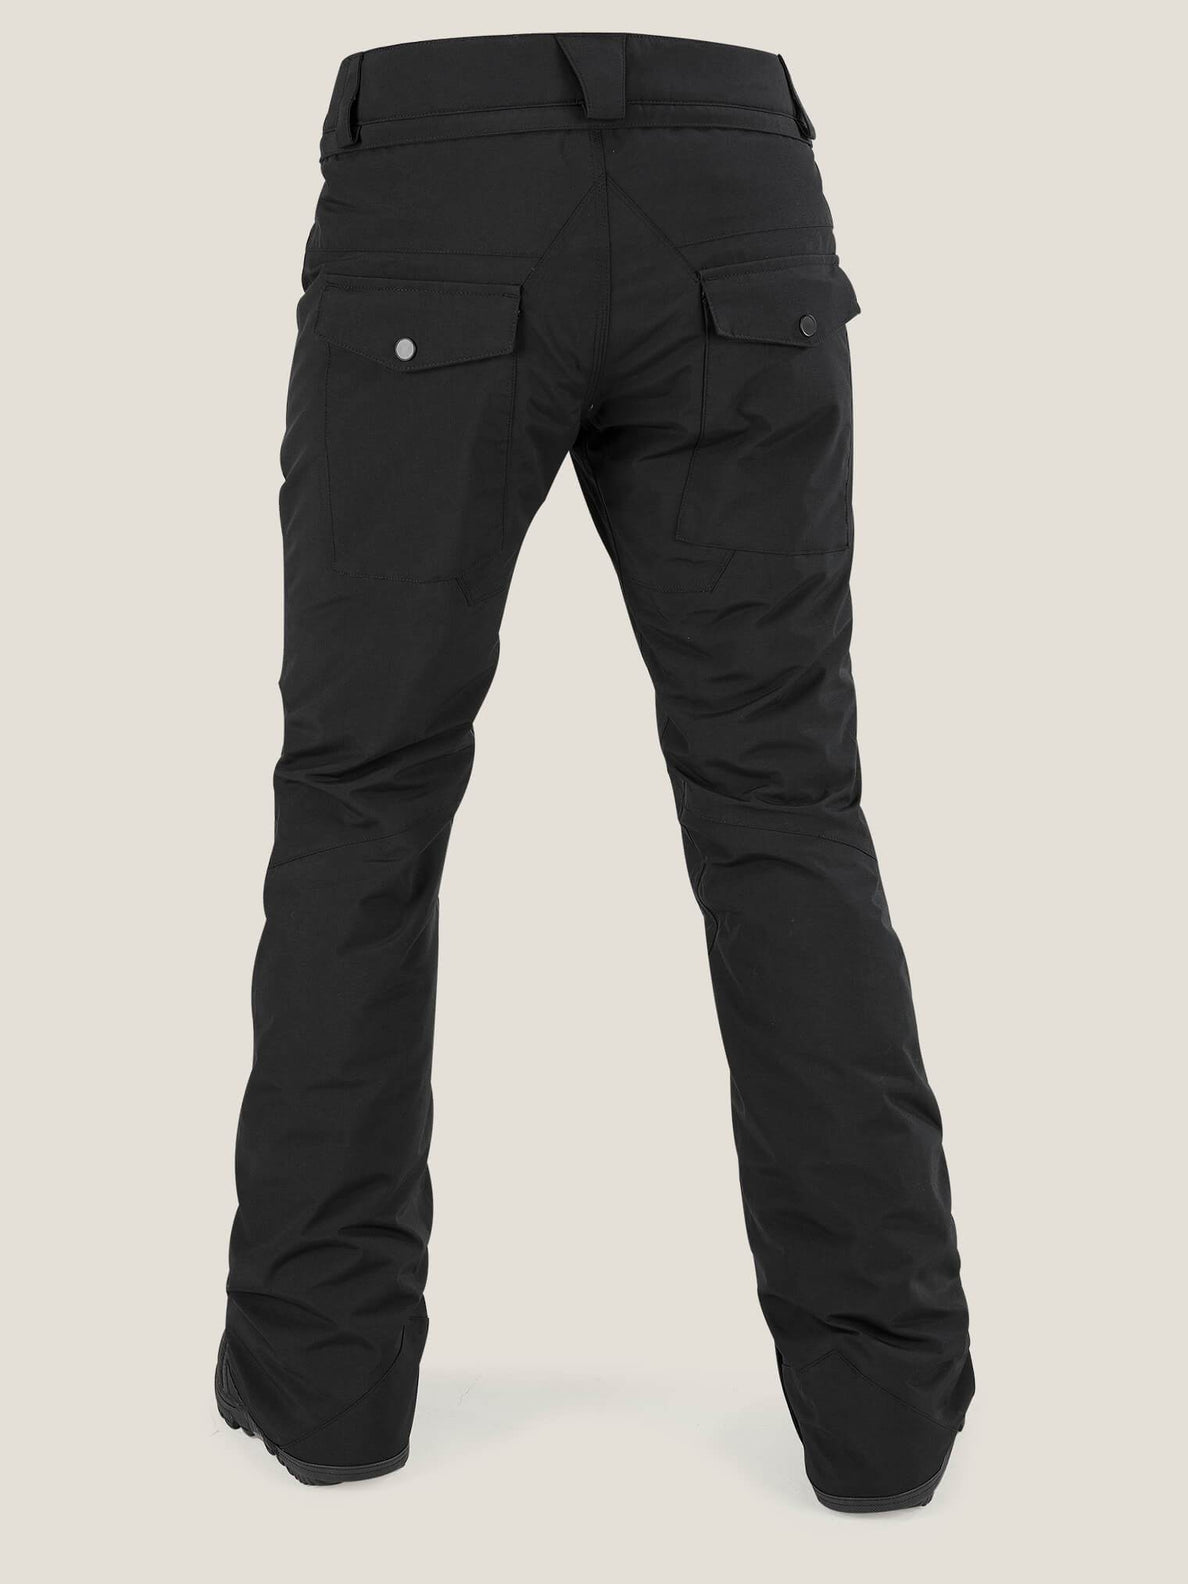 Knox Insulated Gore-tex® Pant In Black, Back View